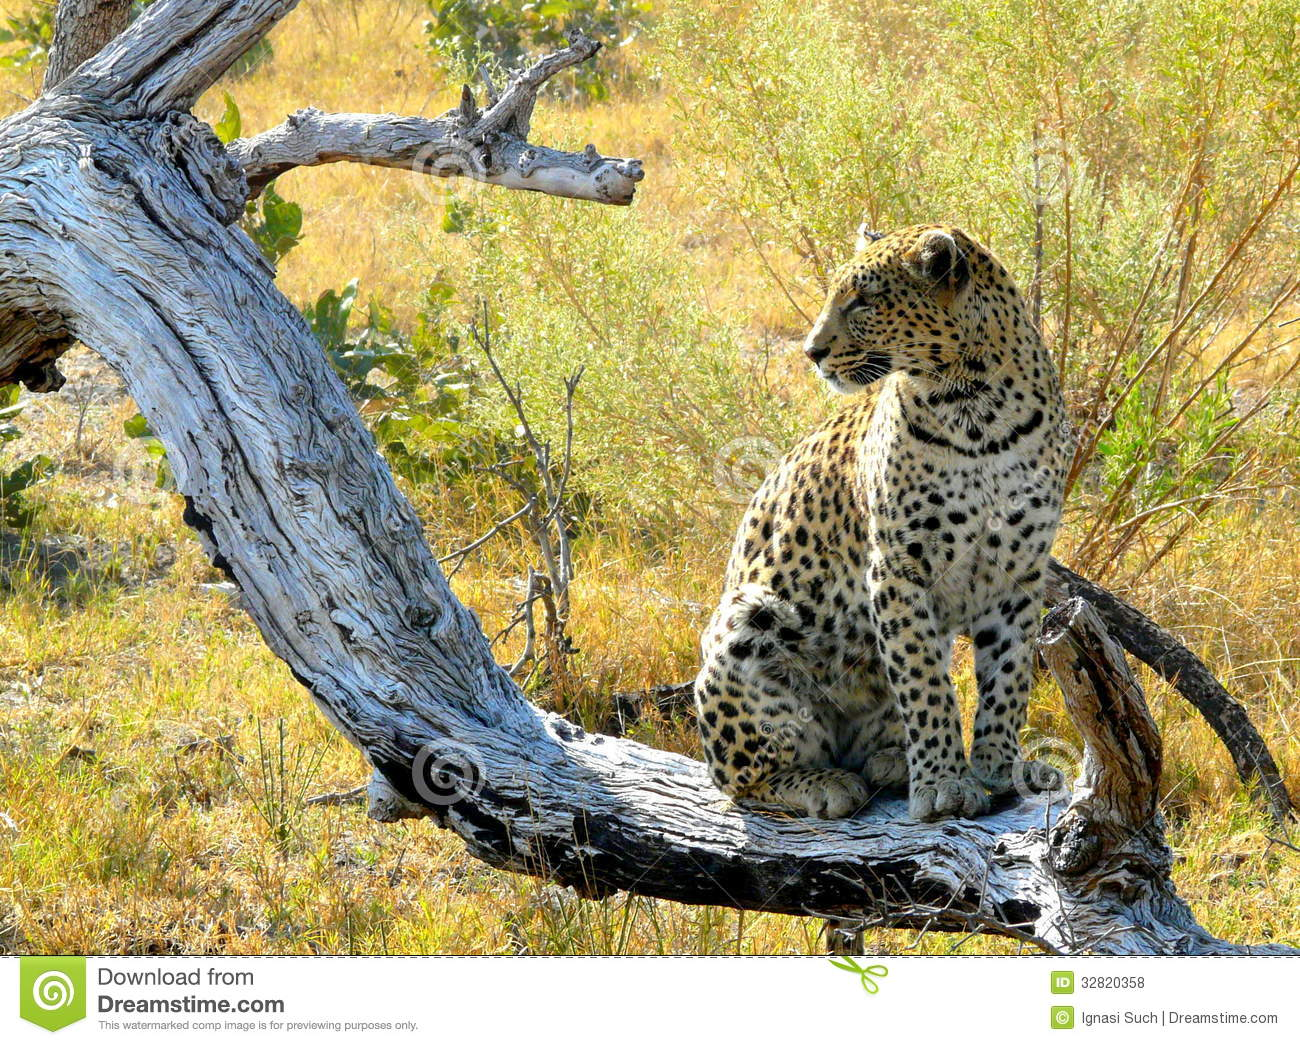 Download Lonely Female Leopard Waits Quiet Over A Dead Tree's Branch Looking For Her Pray In Pom-Pom Island Private Game Reserve, Stock Photo - Image of african, adventure: 32820358